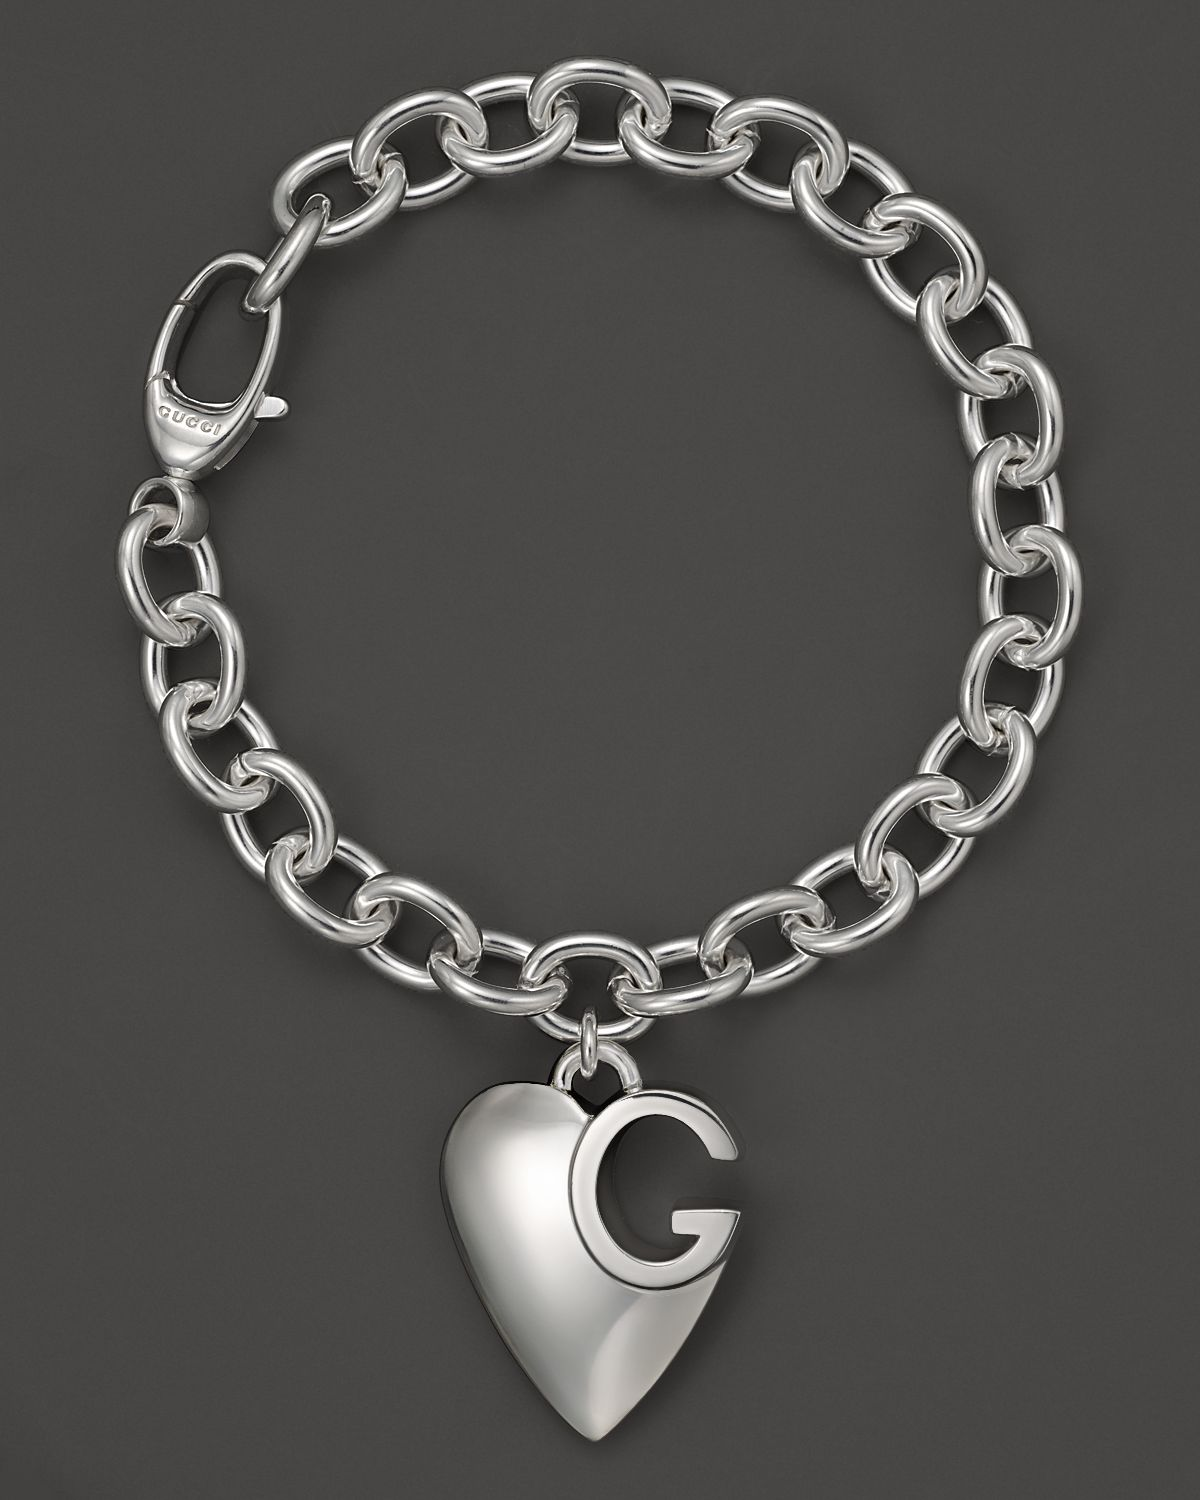 Metal Charm Bracelets: Gucci Sterling Silver Lucky Charms Bracelet With